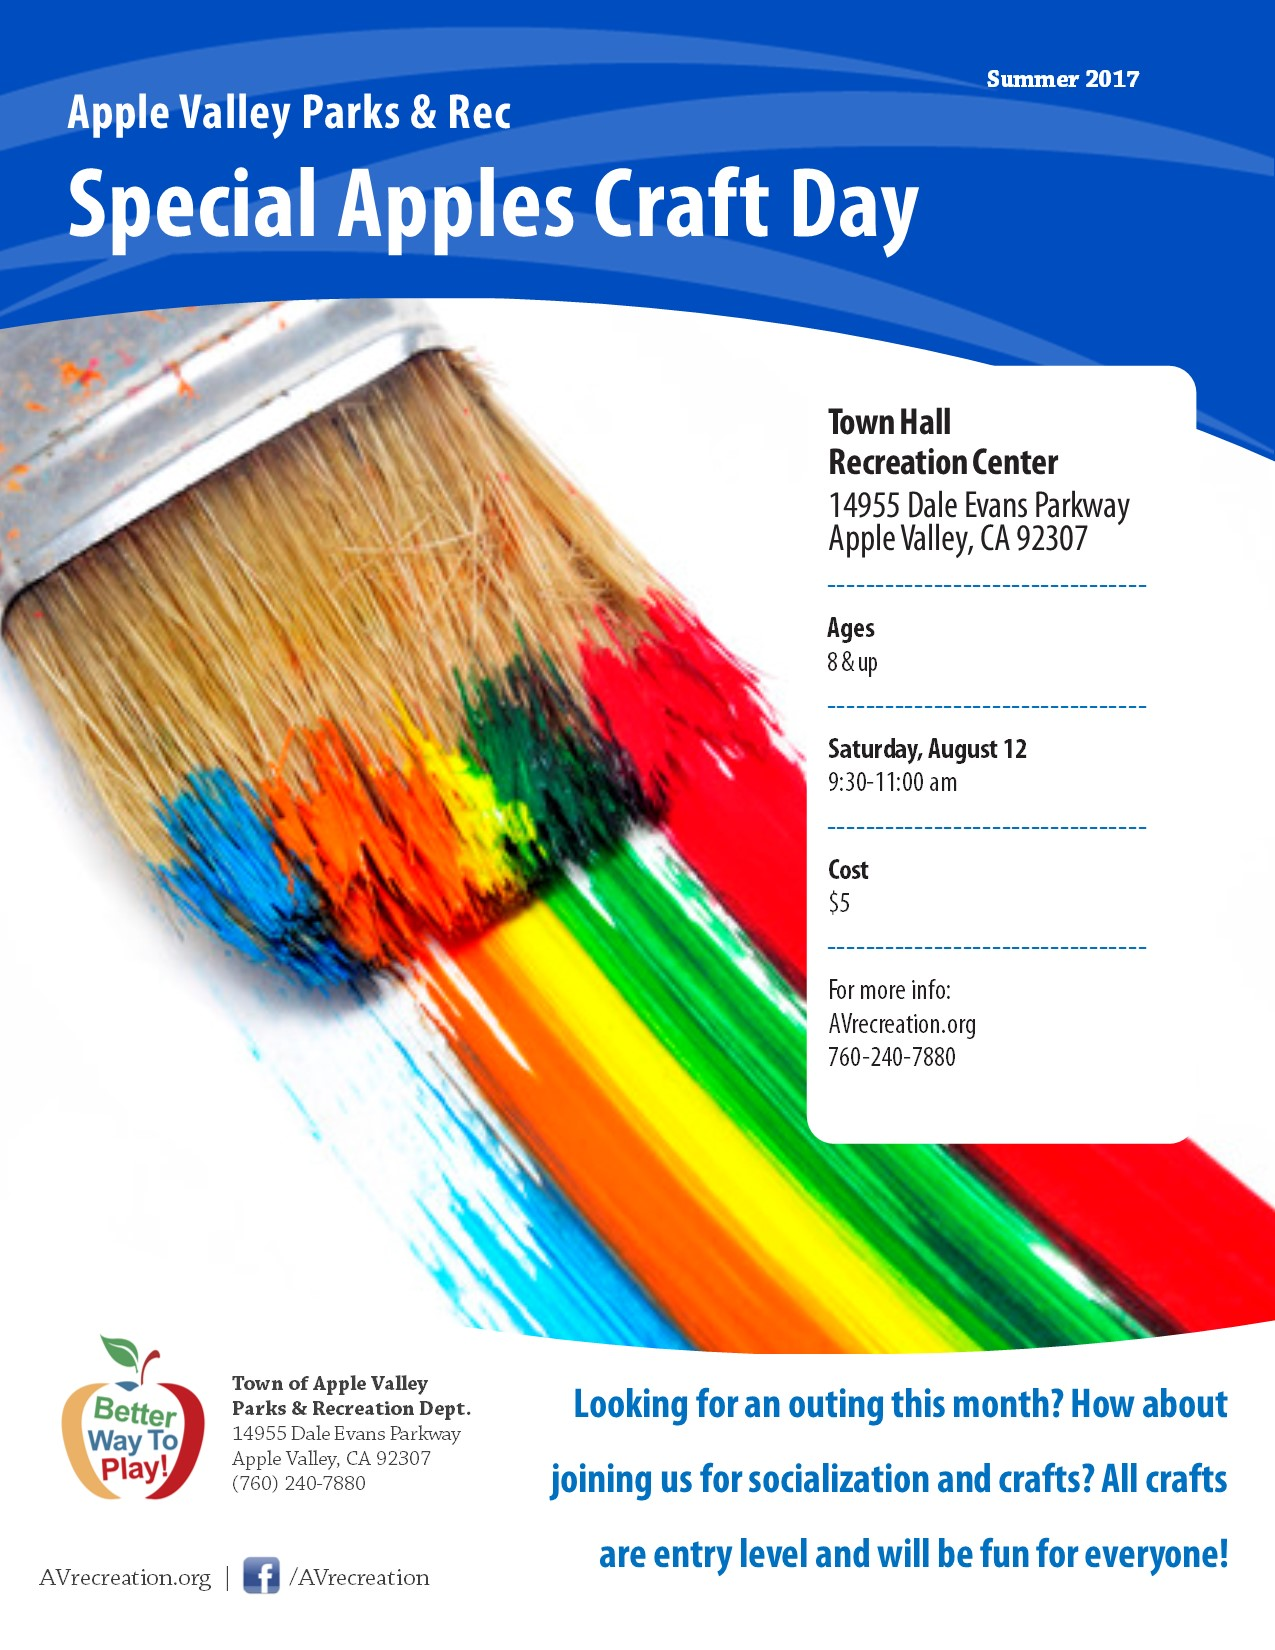 Special Apples Craft Day